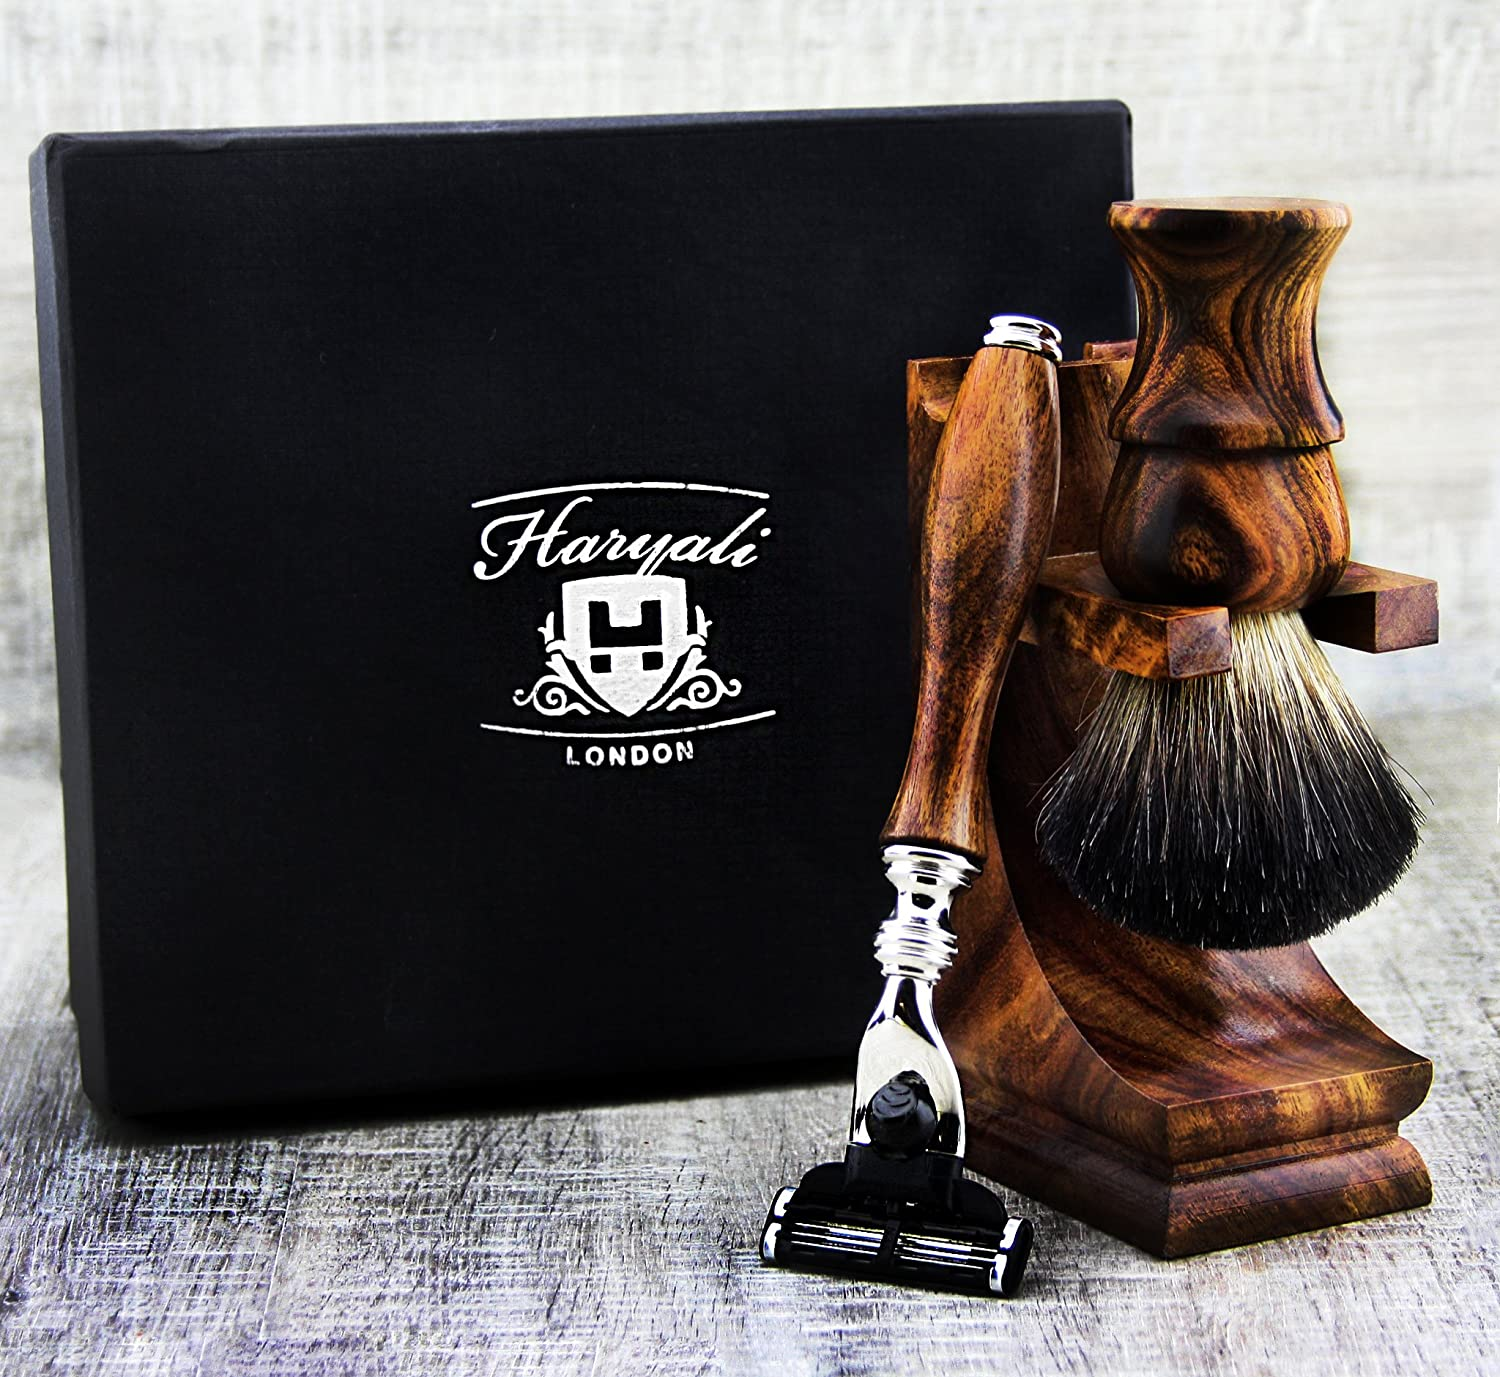 3 Pieces Wooden Shaving Set For Men's. The Set Comes With 3 types Of Optional Razor Head Like Gillette Fusion, Gillette Mach 3 & De Safety(NO BLADES INCLUDED). The Set Also Includes Shaving Brush With Synthetic Badger Looking Hair & Stand For Both